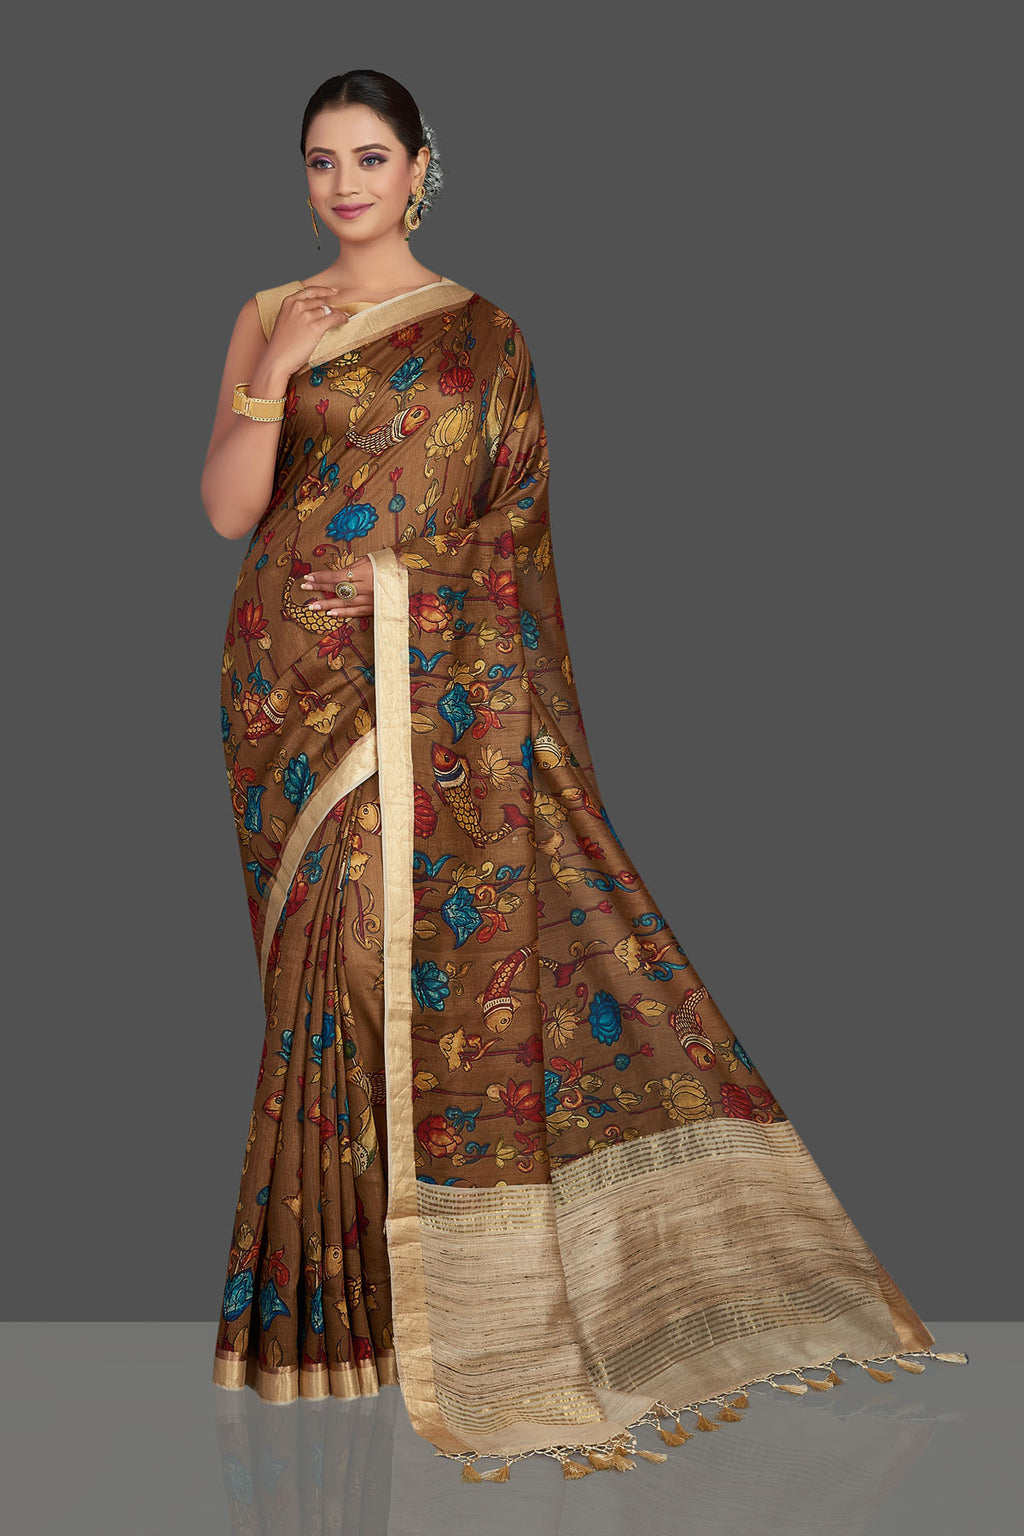 Buy stunning brown printed tussar Banarasi saree online in USA with beige pallu. Look your best on special occasions with stunning Banarasi saris, pure silk sarees, tussar sarees, handwoven sarees from Pure Elegance Indian saree store in USA.-full view